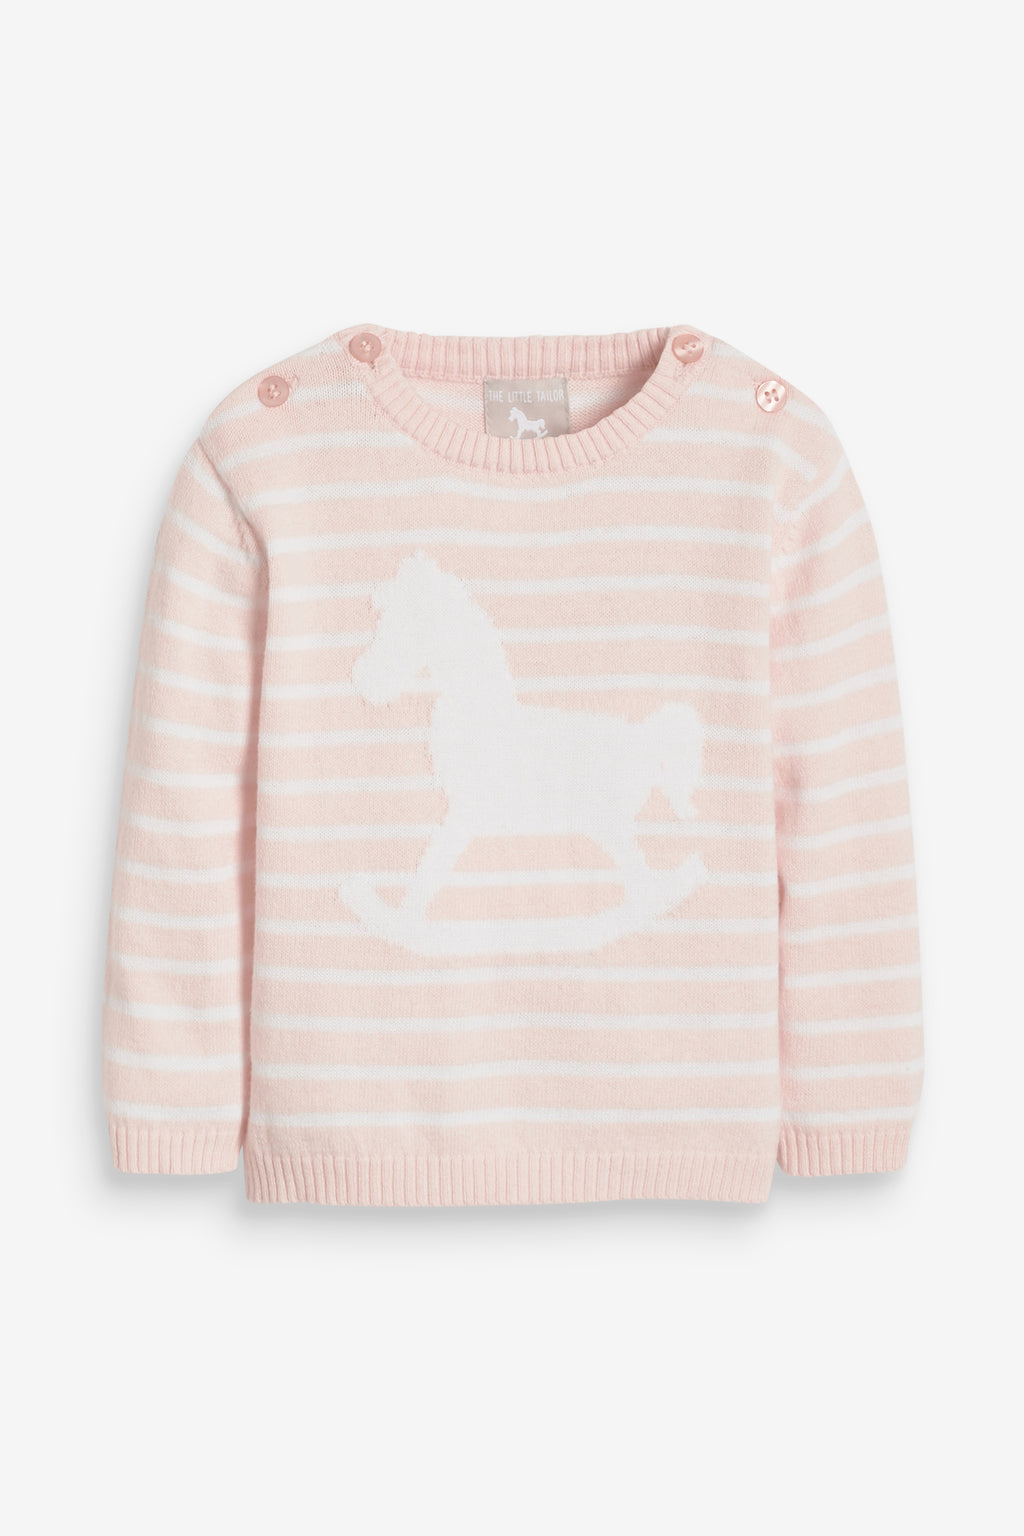 Rocking Horse Stripey Jumper - pink and white